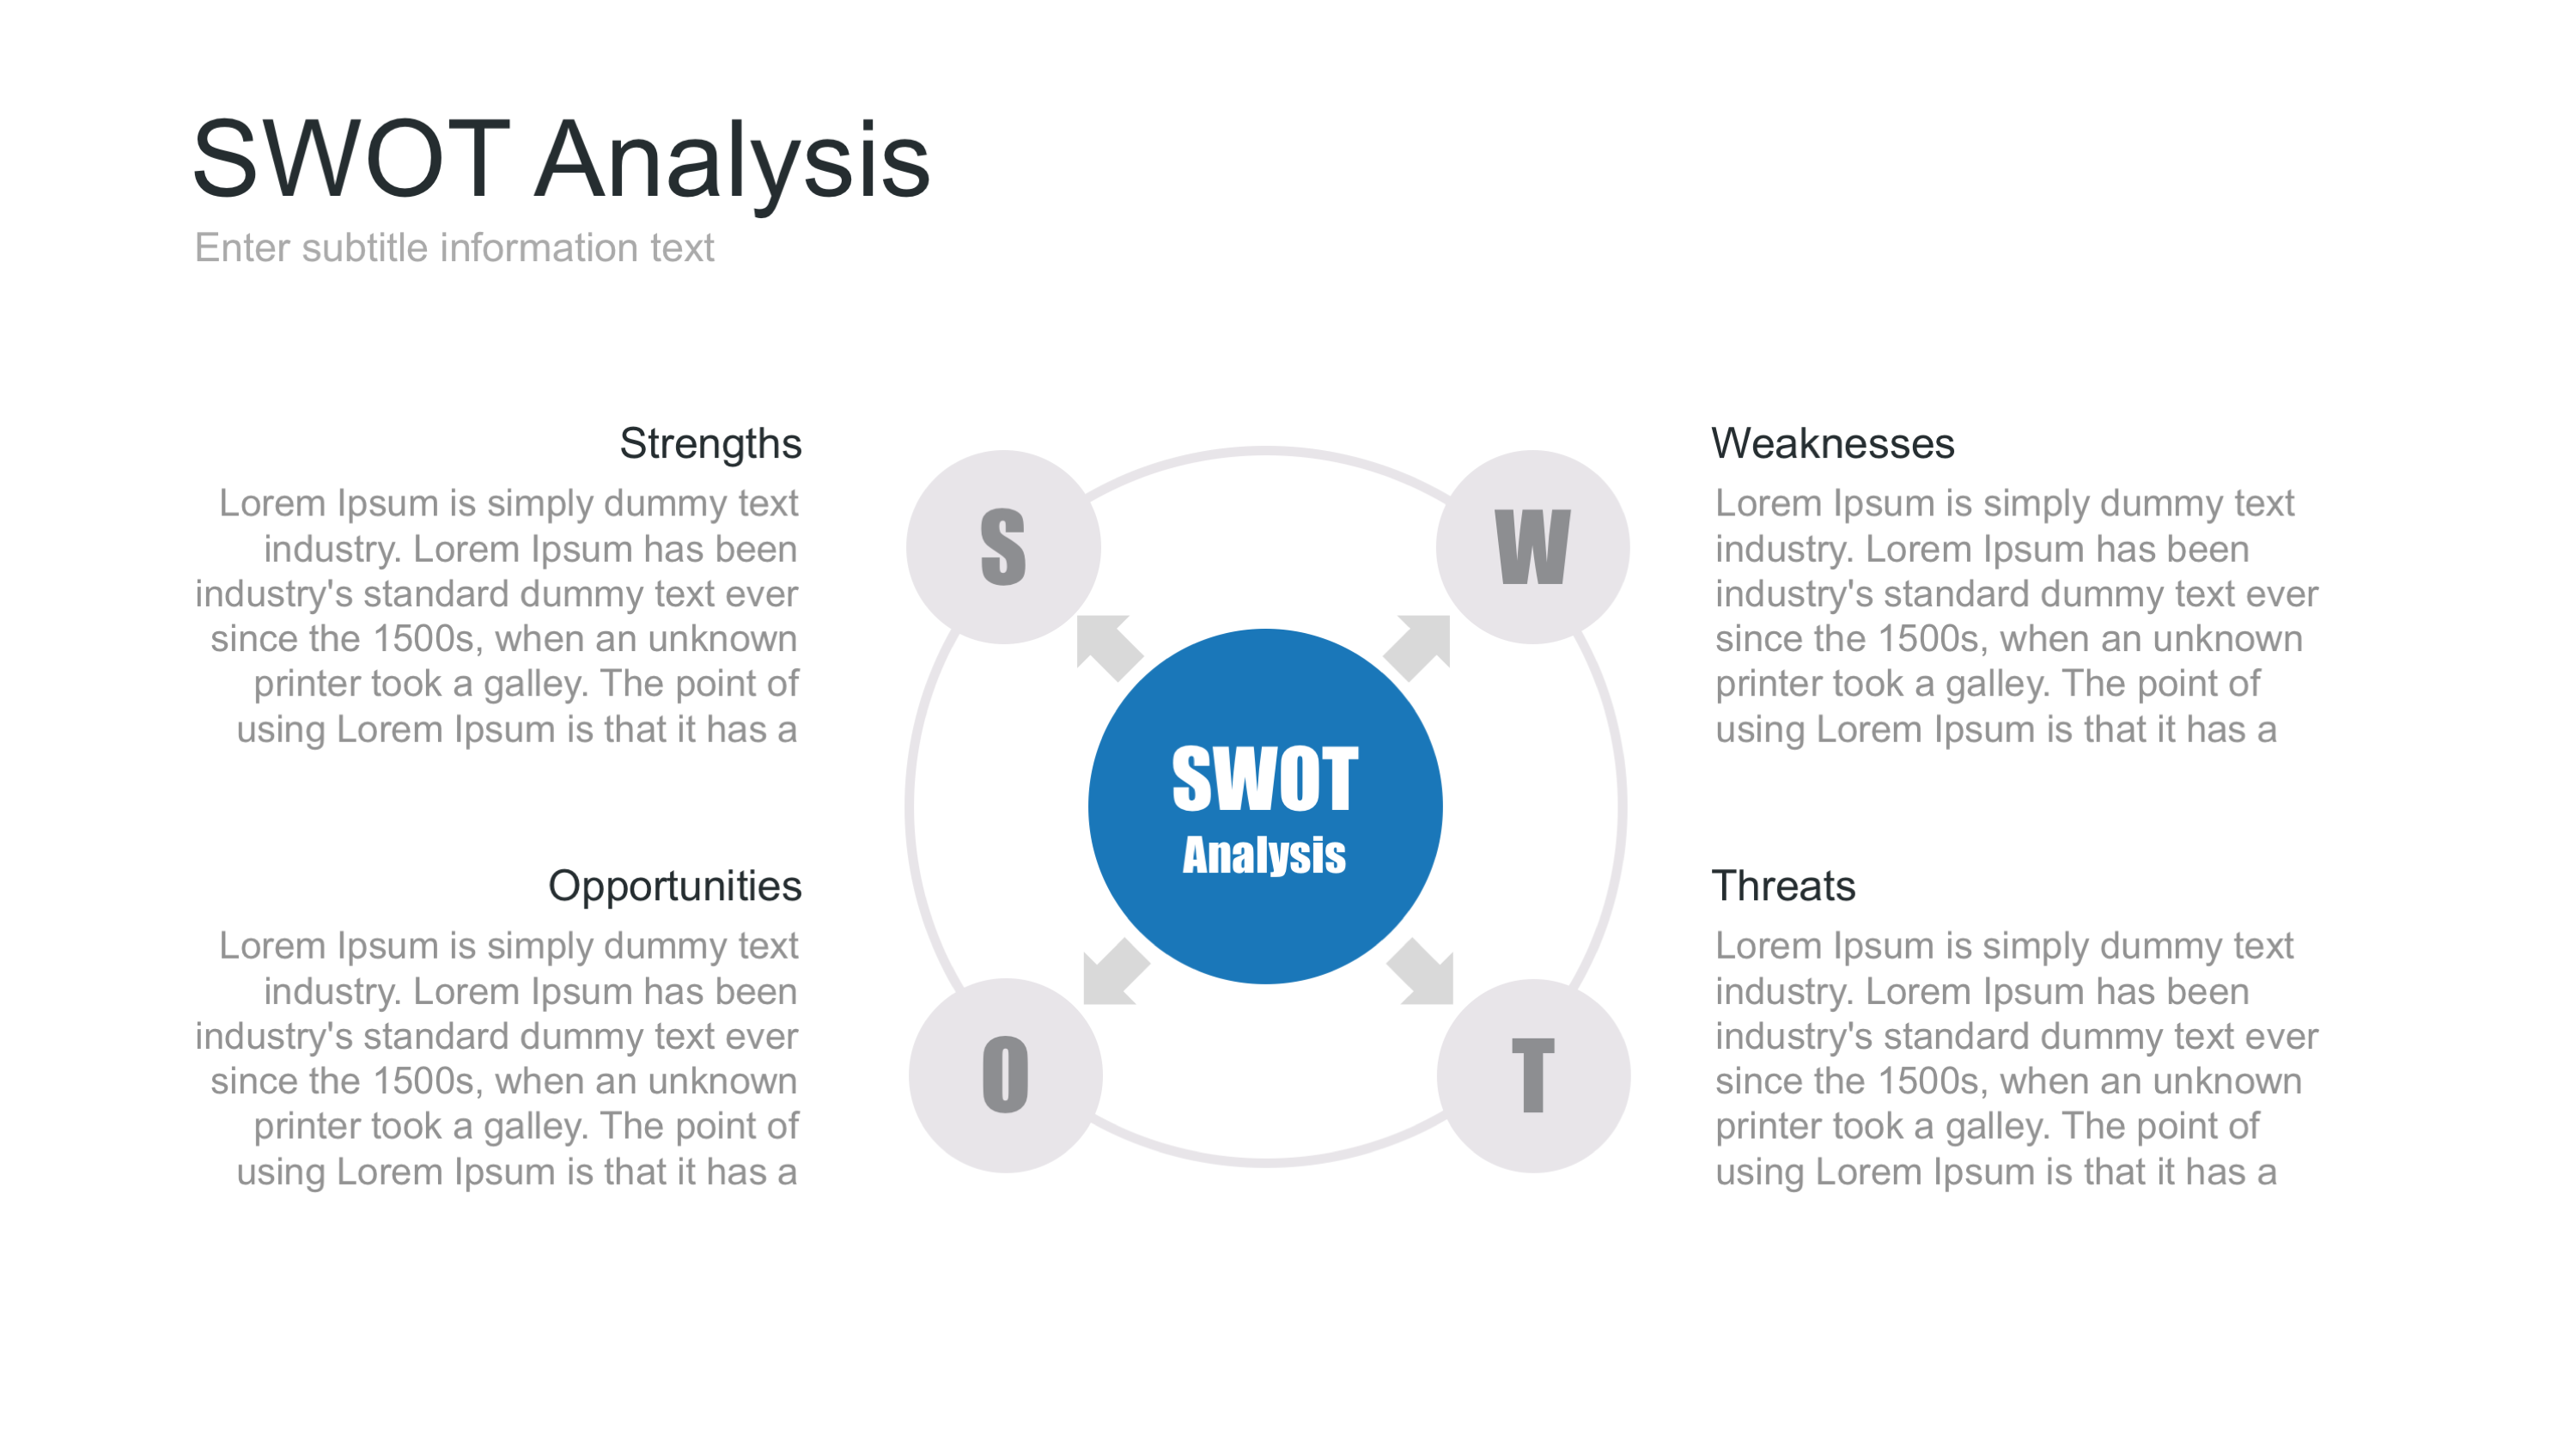 office max swot analysis